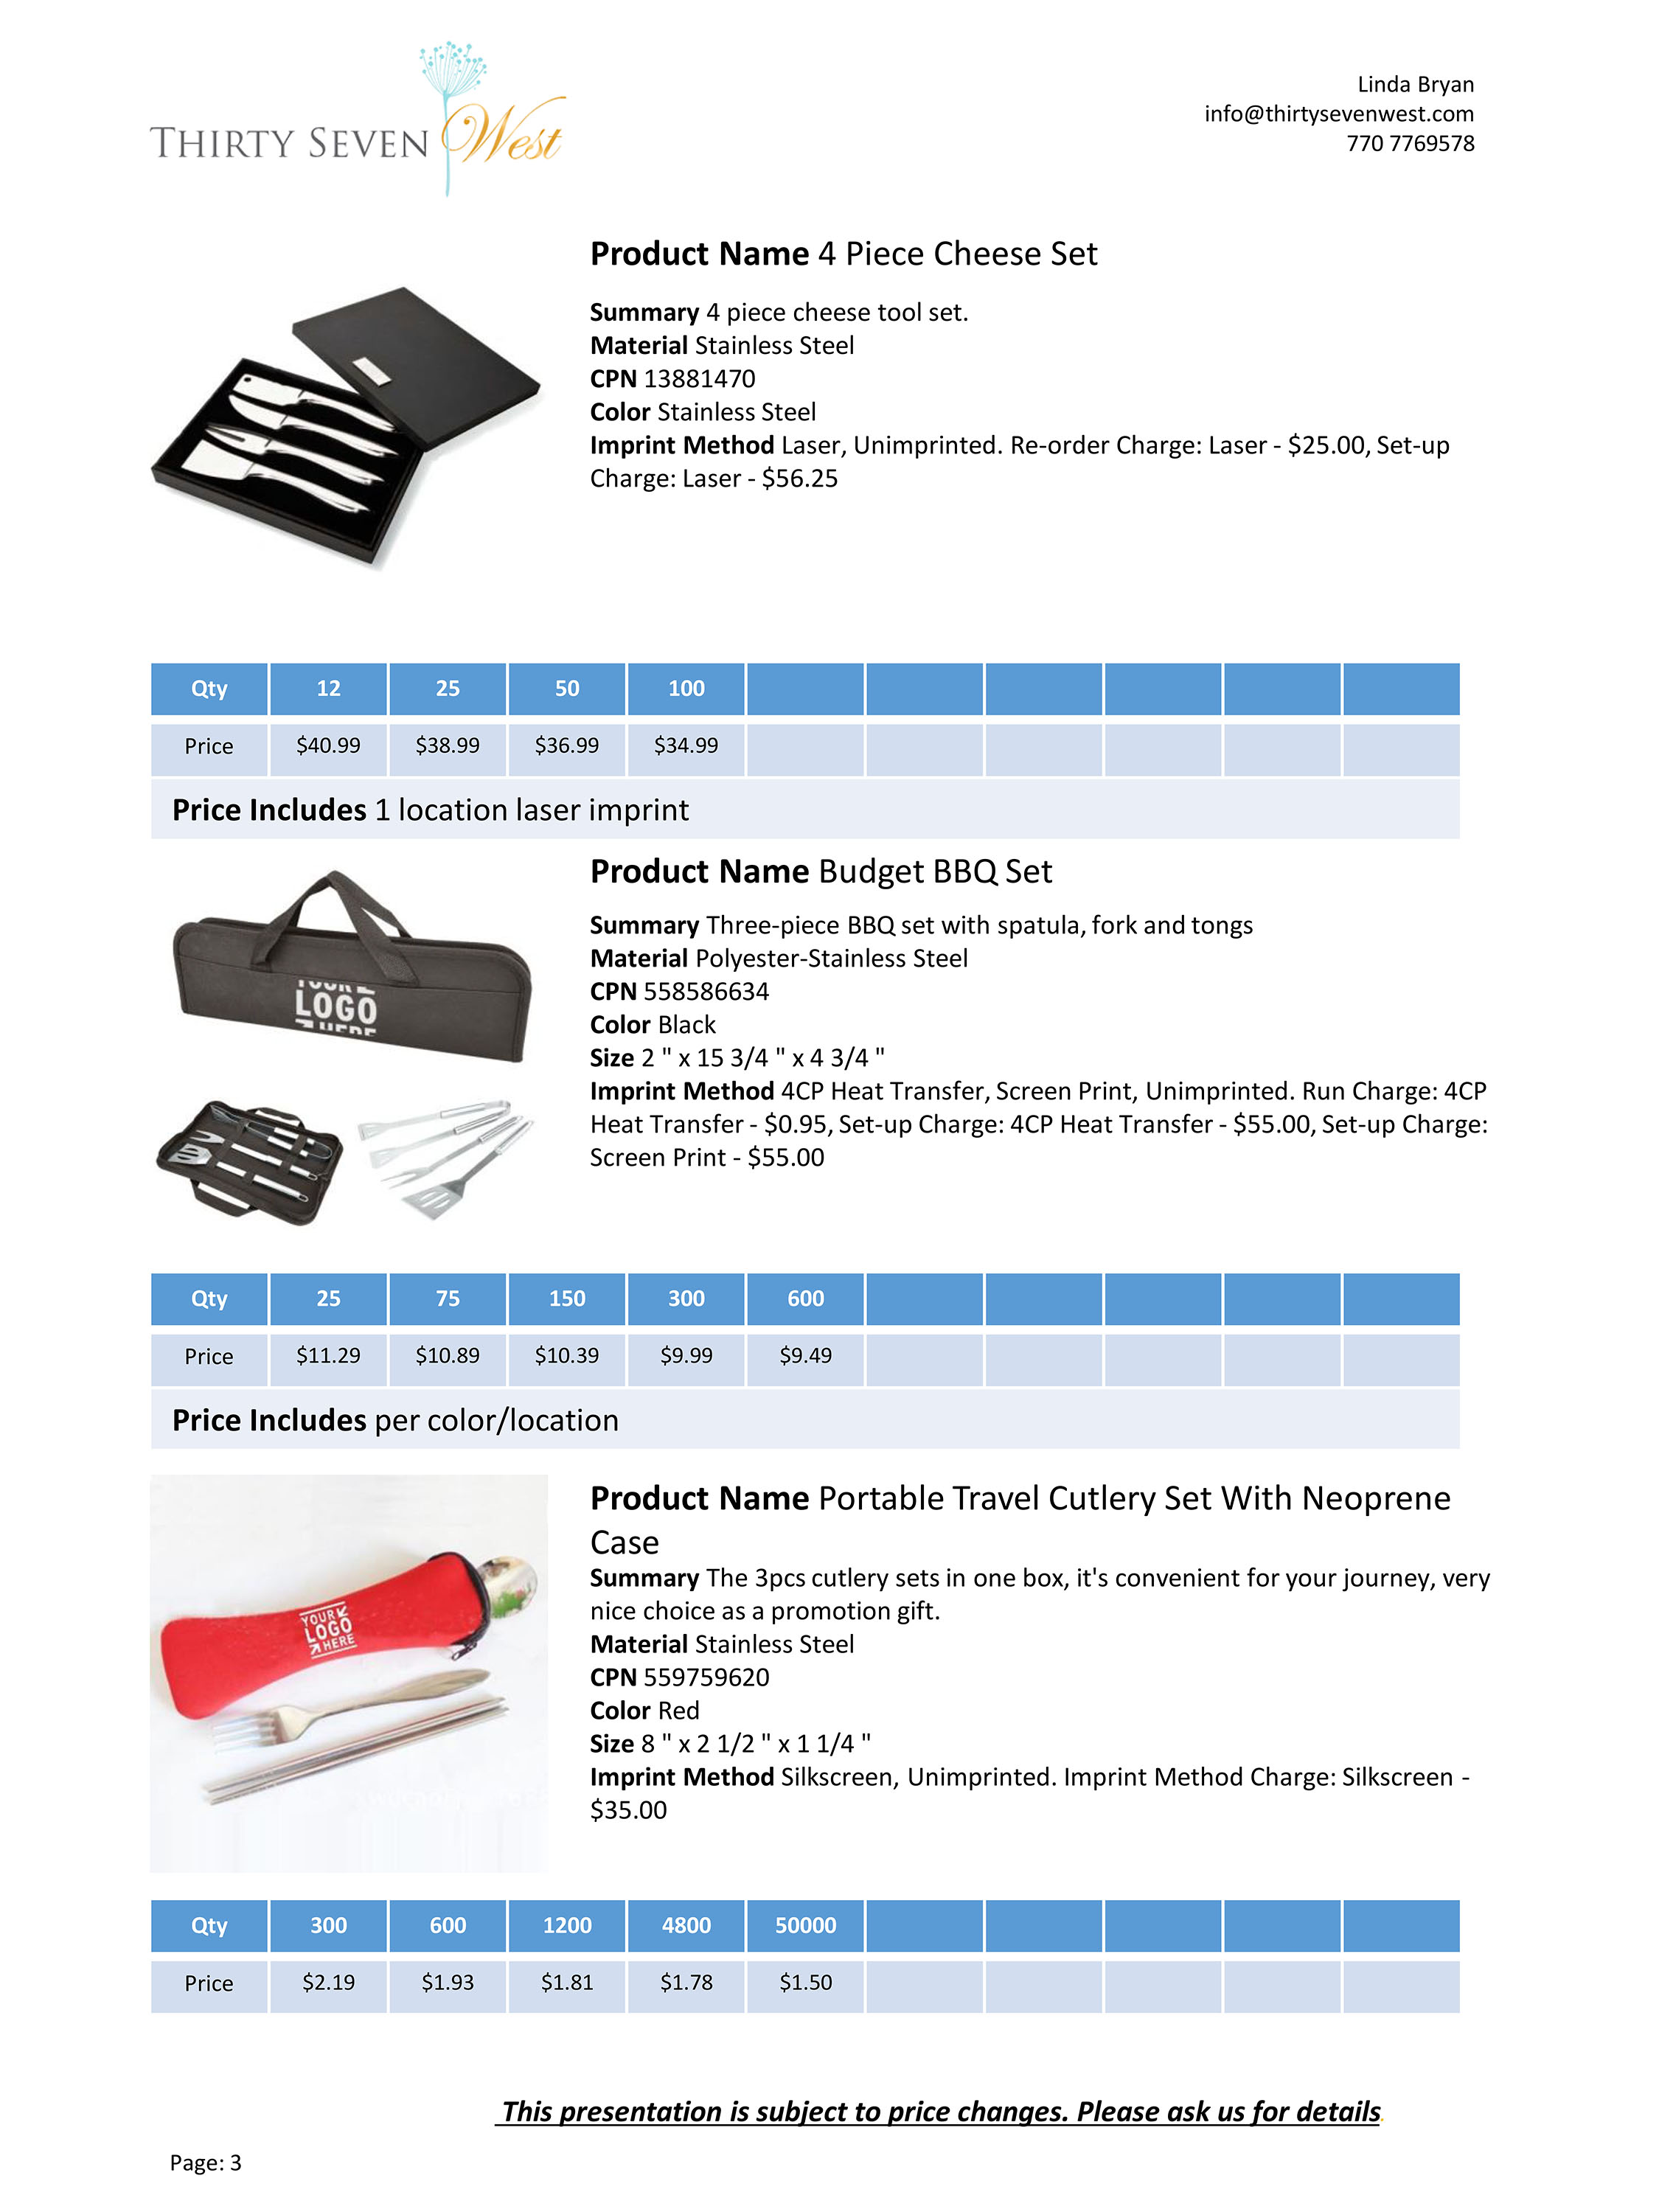 home-items-for-clients-3-300.jpg